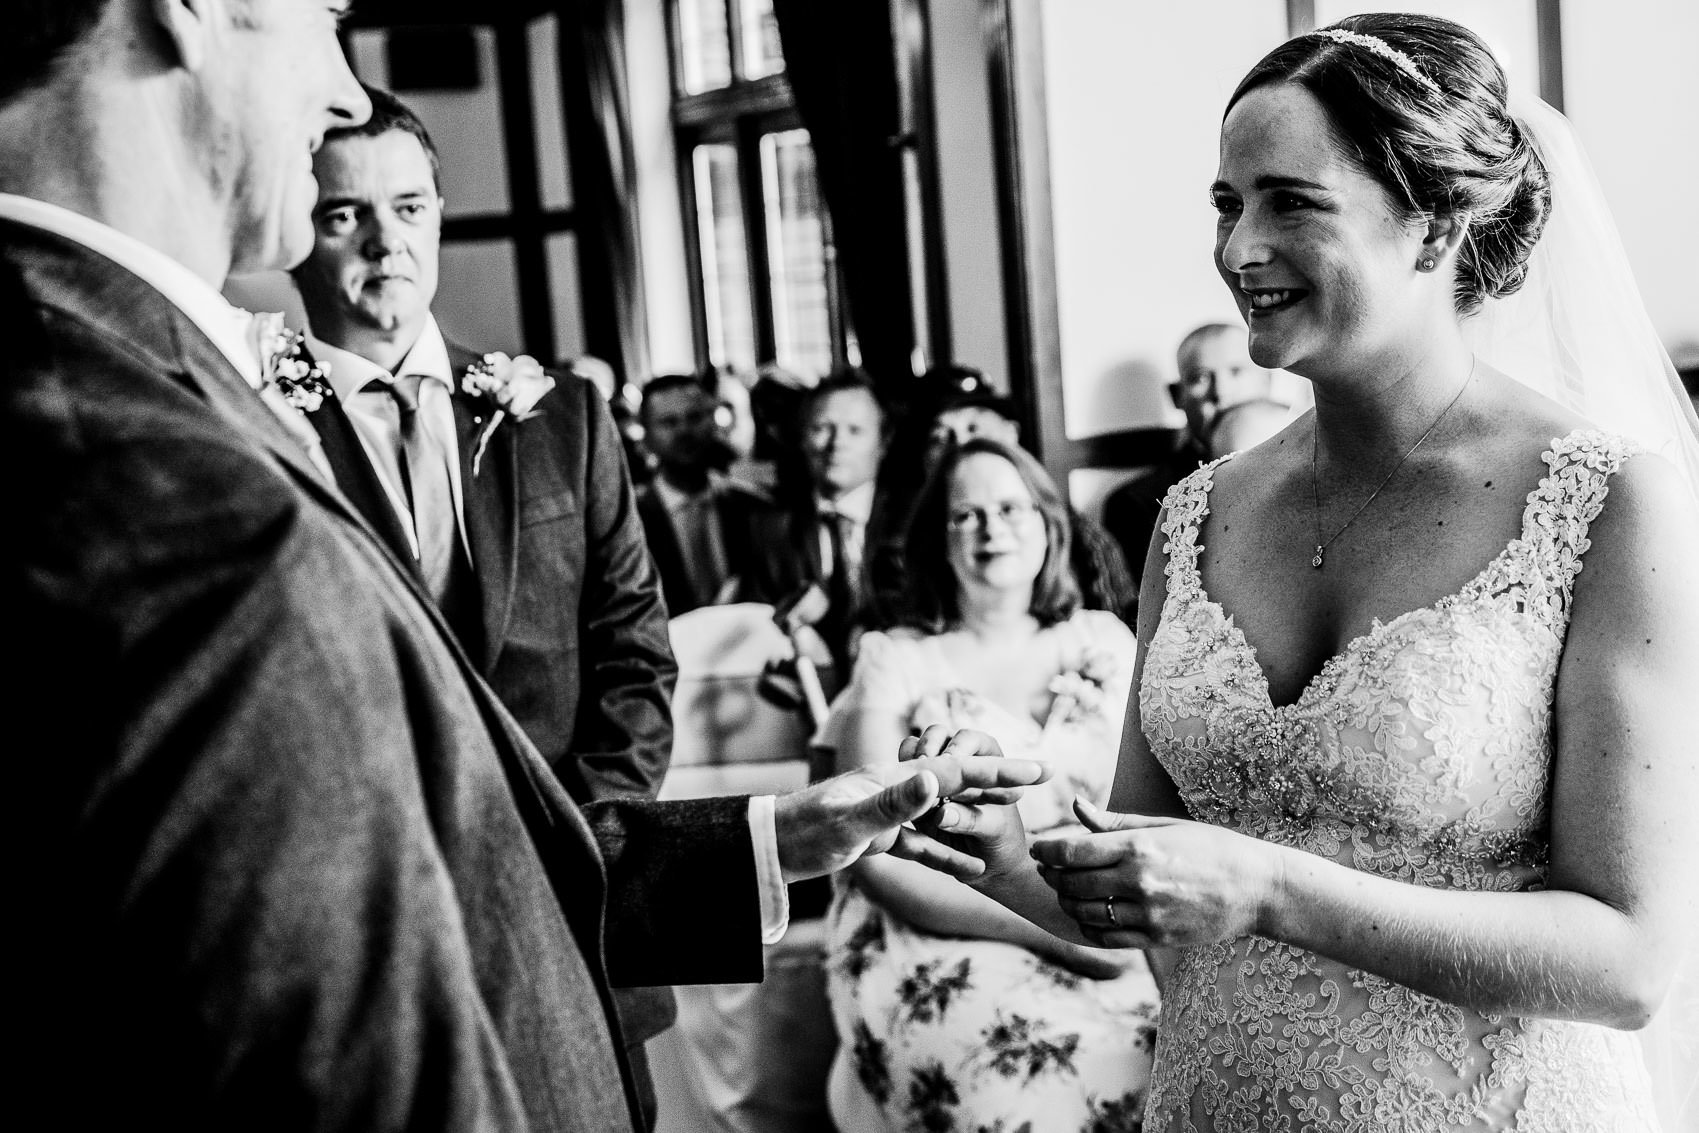 Farnham House Hotel Wedding Photography - James and Lucy 11